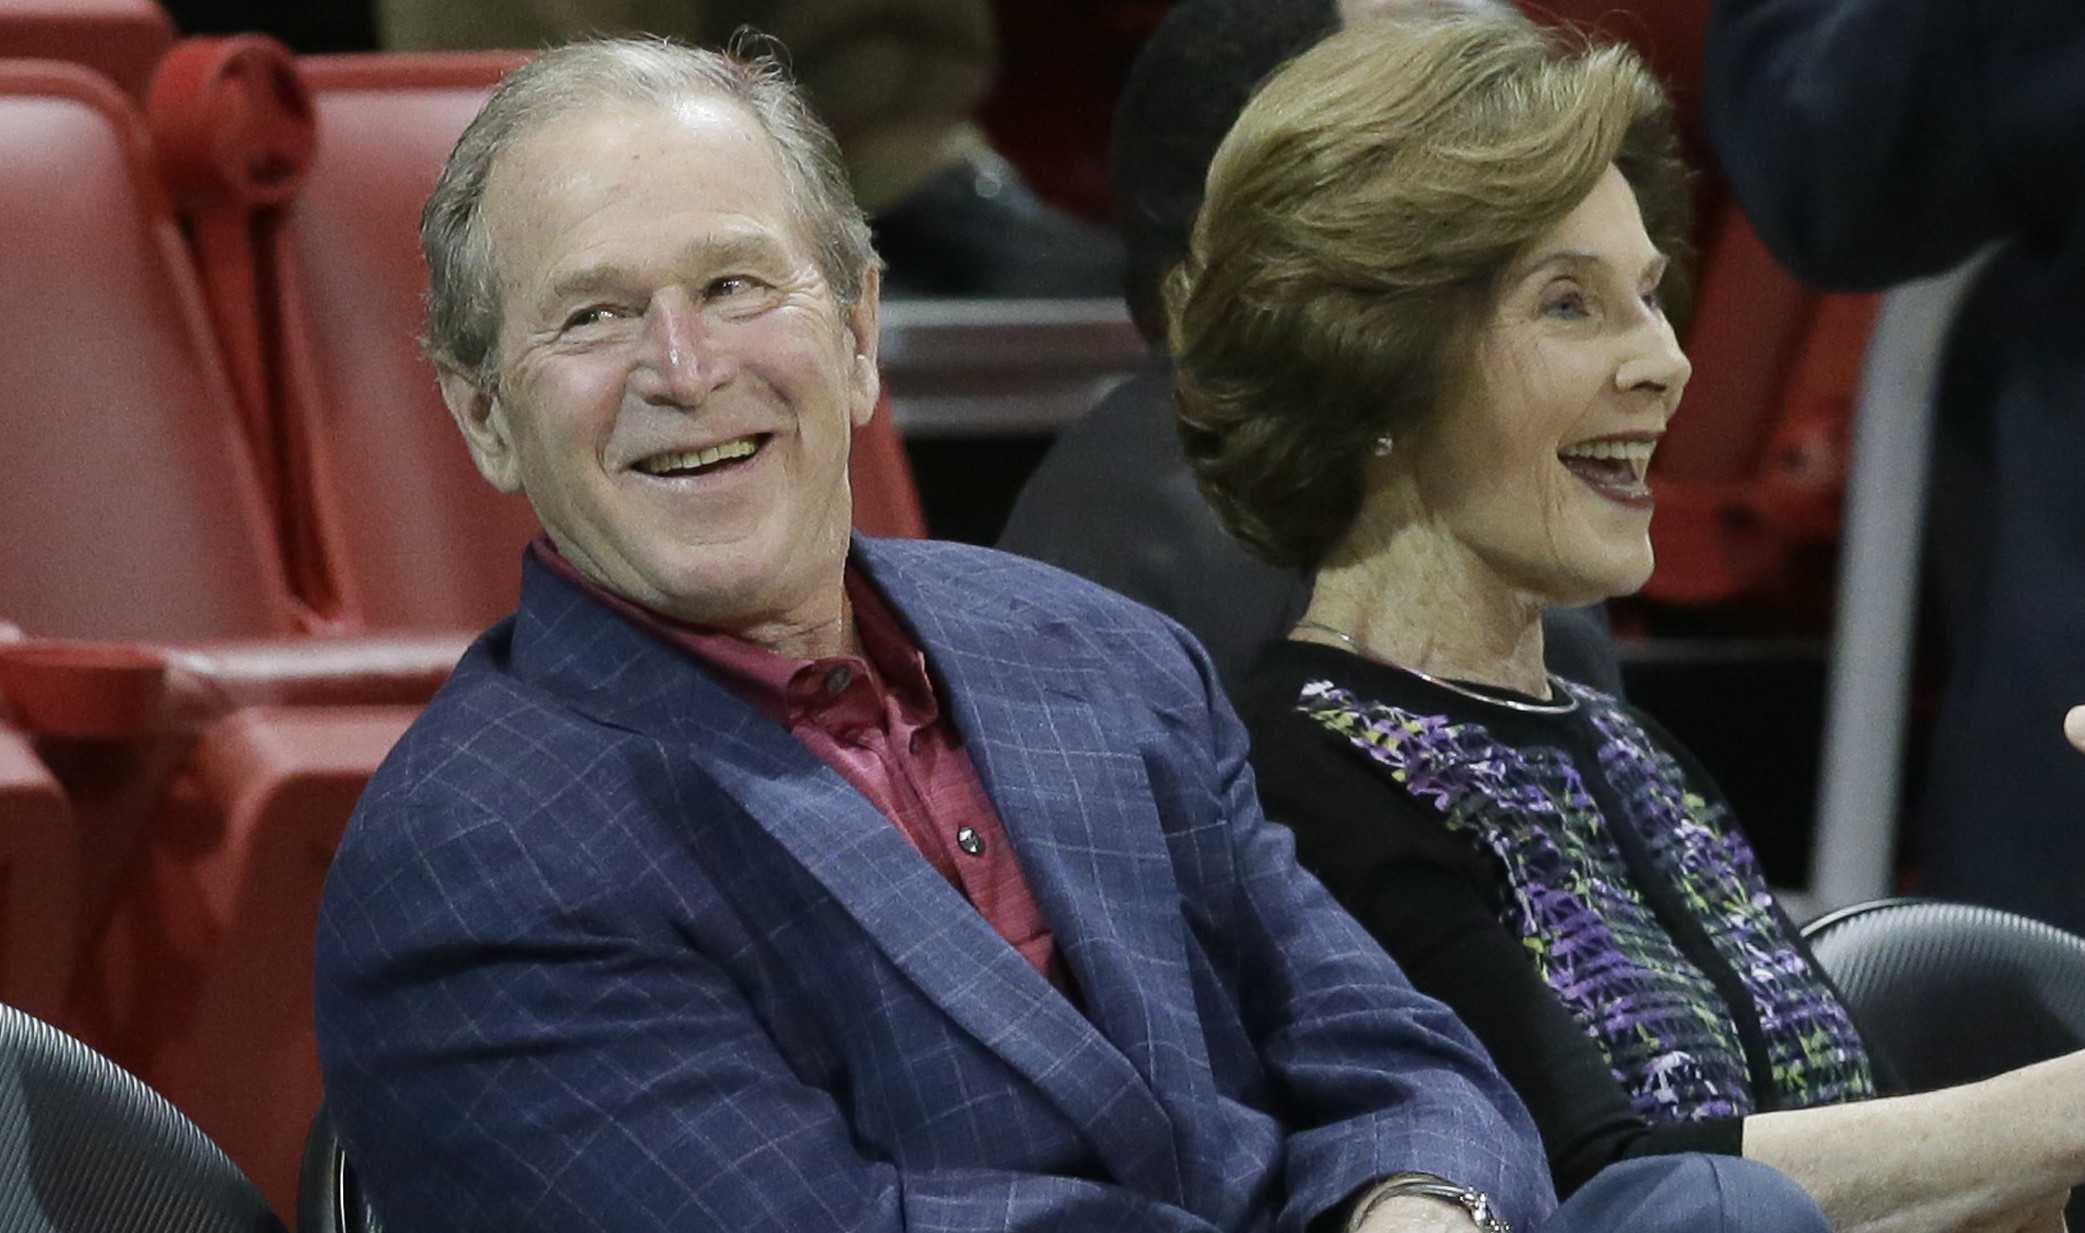 Former President George W. Bush sits with his wife Laura Bush before an NCAA college basketball game between Tulsa and SMU Wednesday, Feb. 10, 2016, in Dallas. (AP Photo/LM Otero)